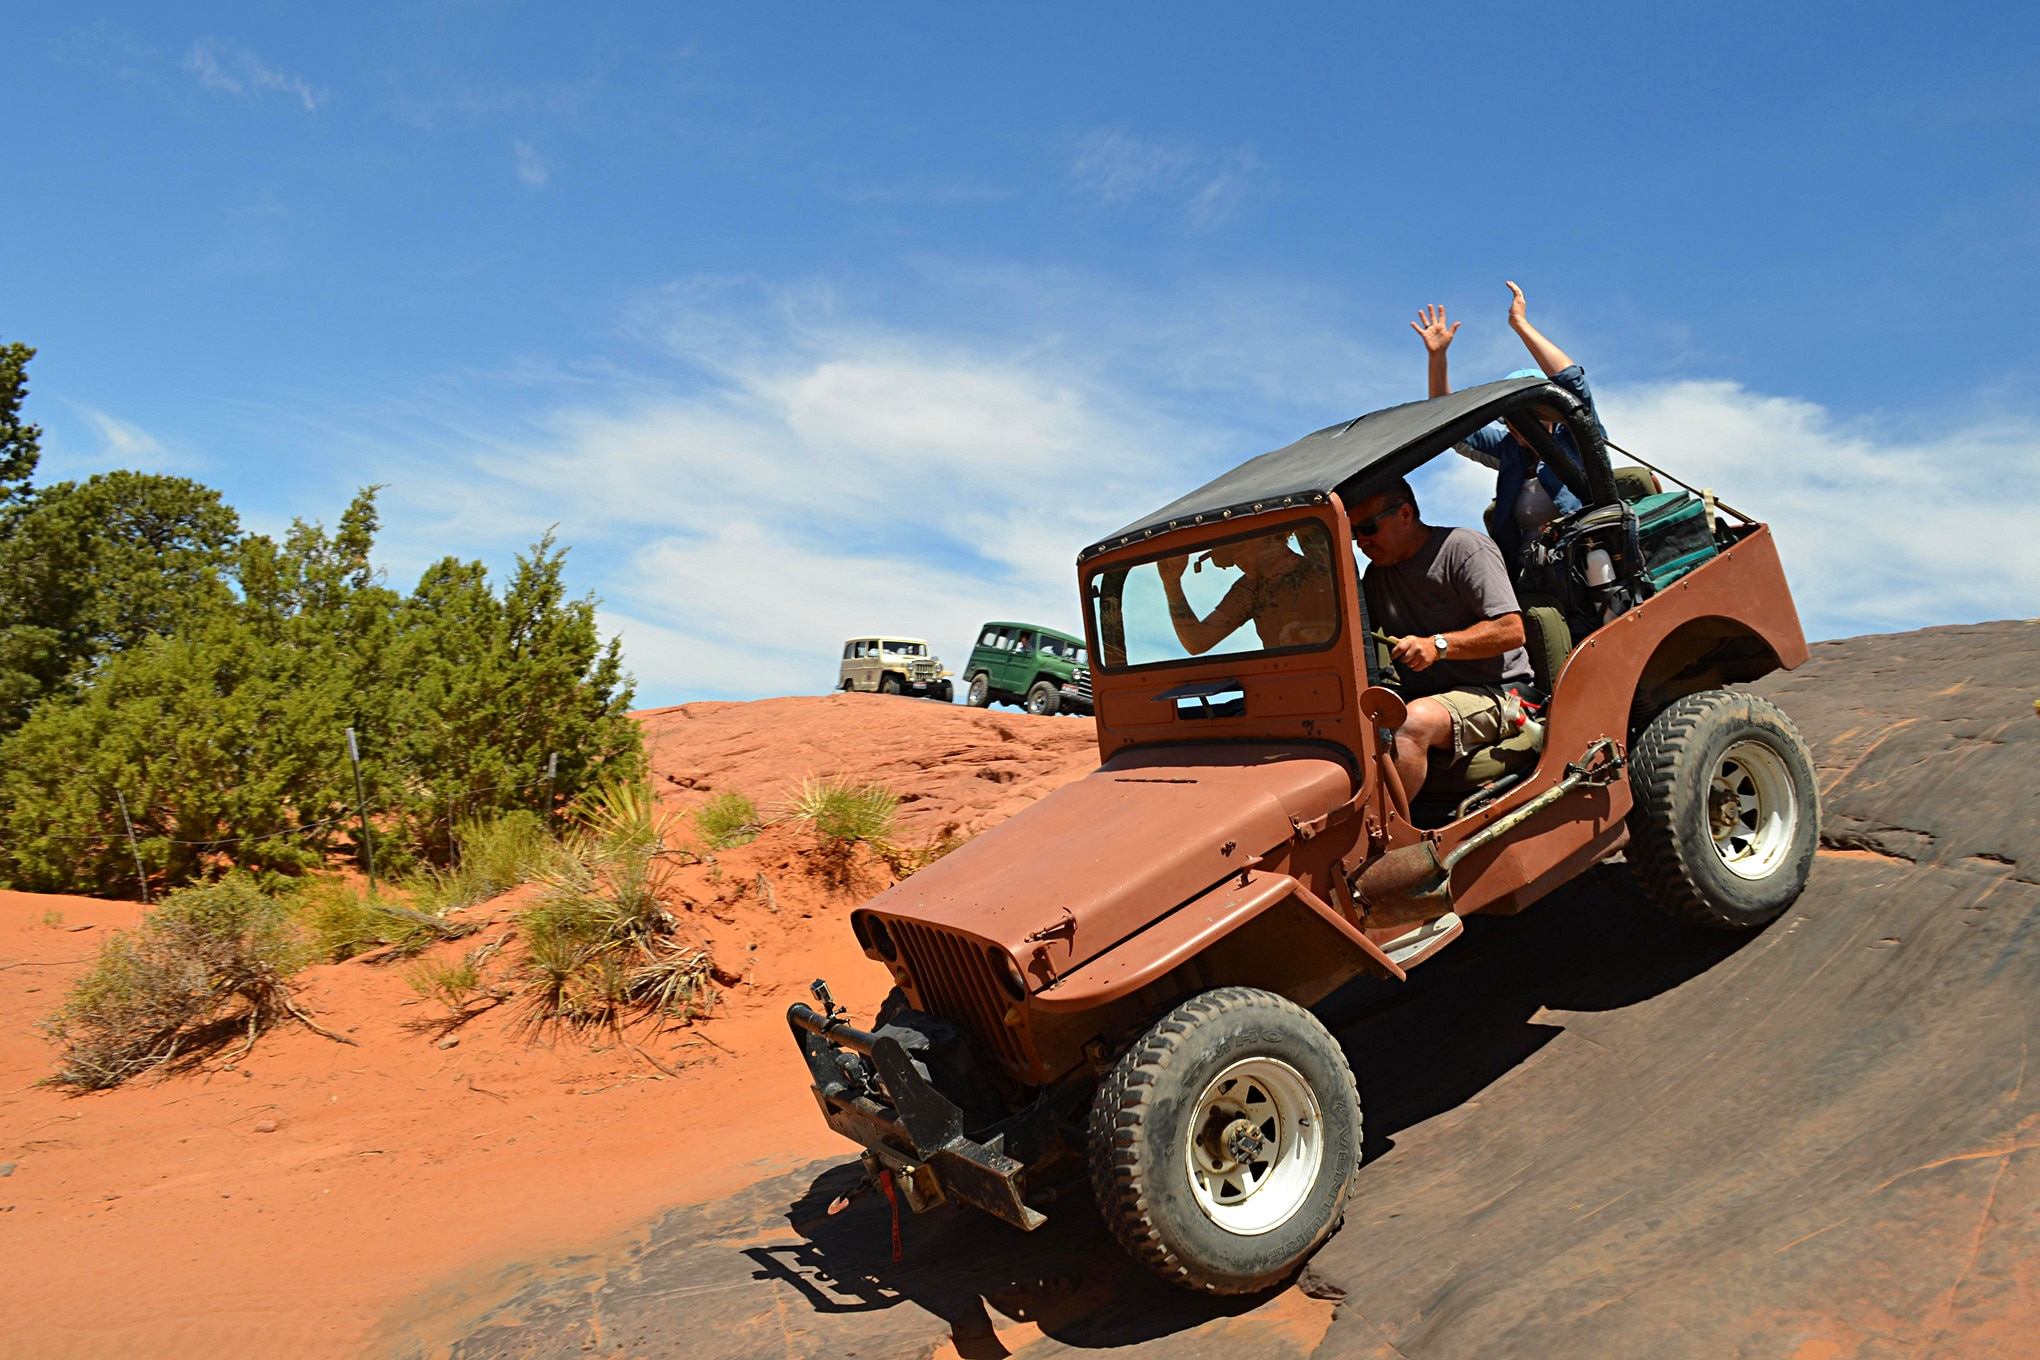 040 willys rally moab 2018 gallery.JPG